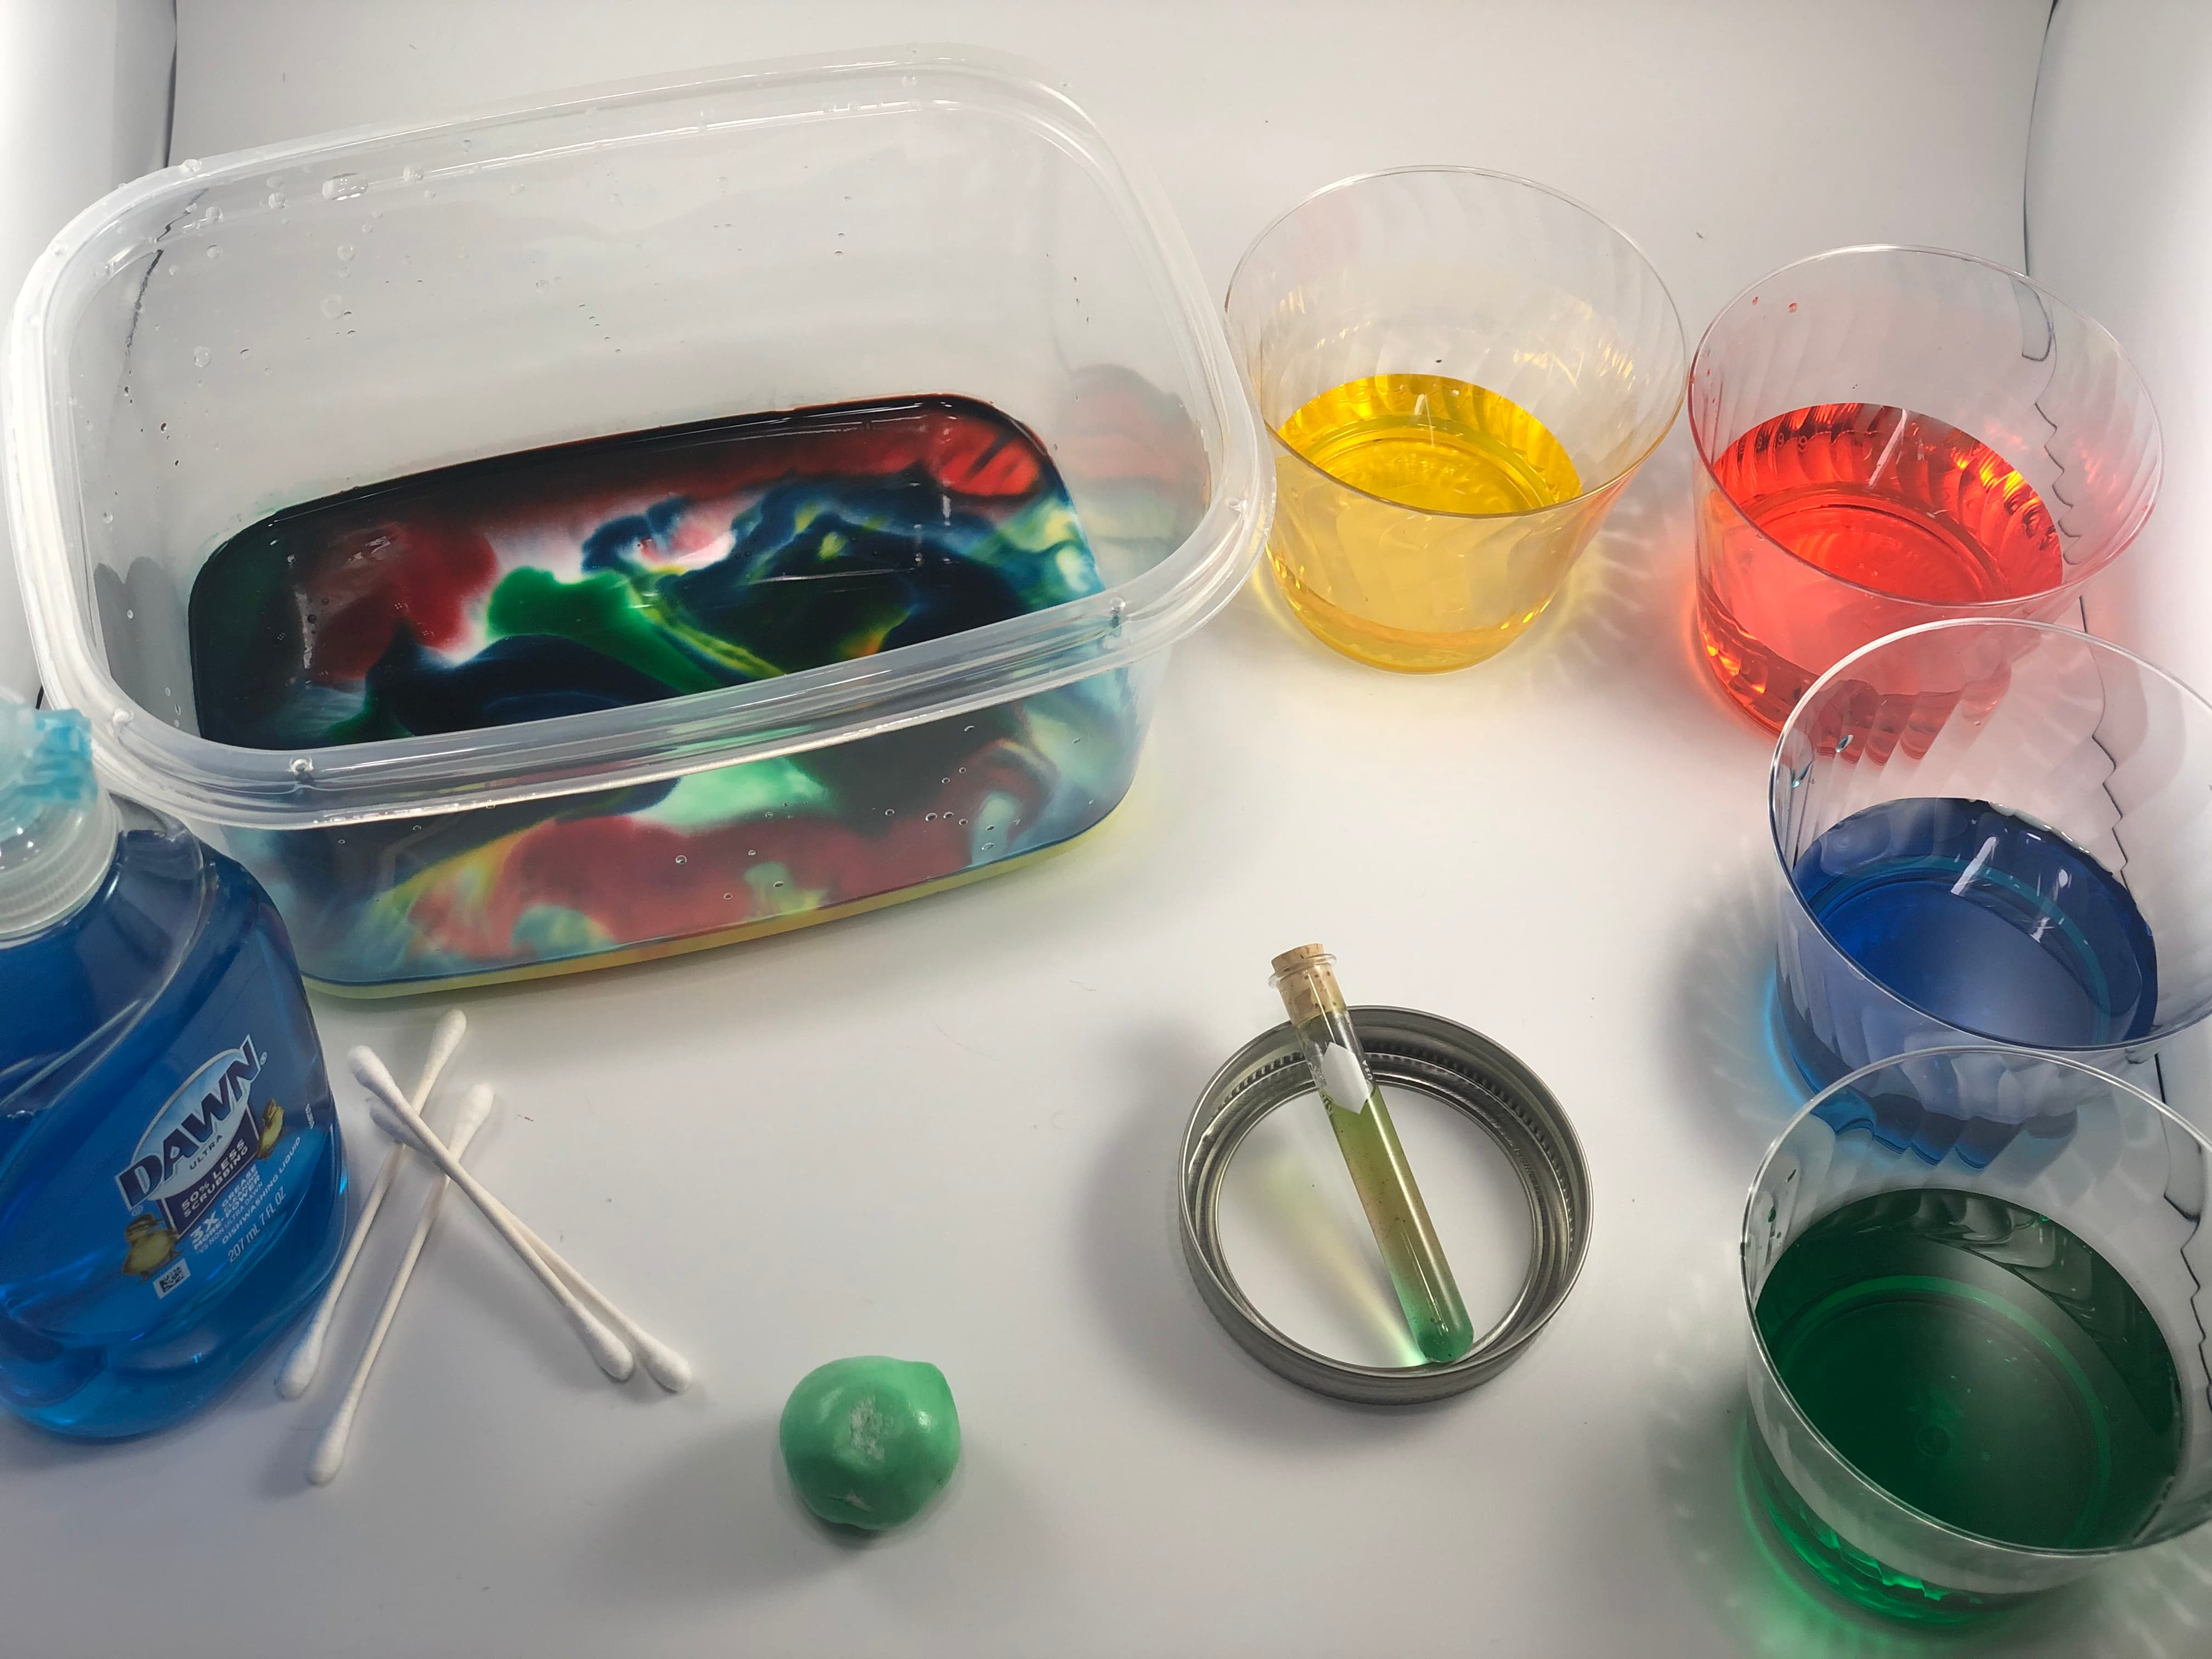 Learn about atoms, molecules, and reactions through hands-on chemistry experiments!